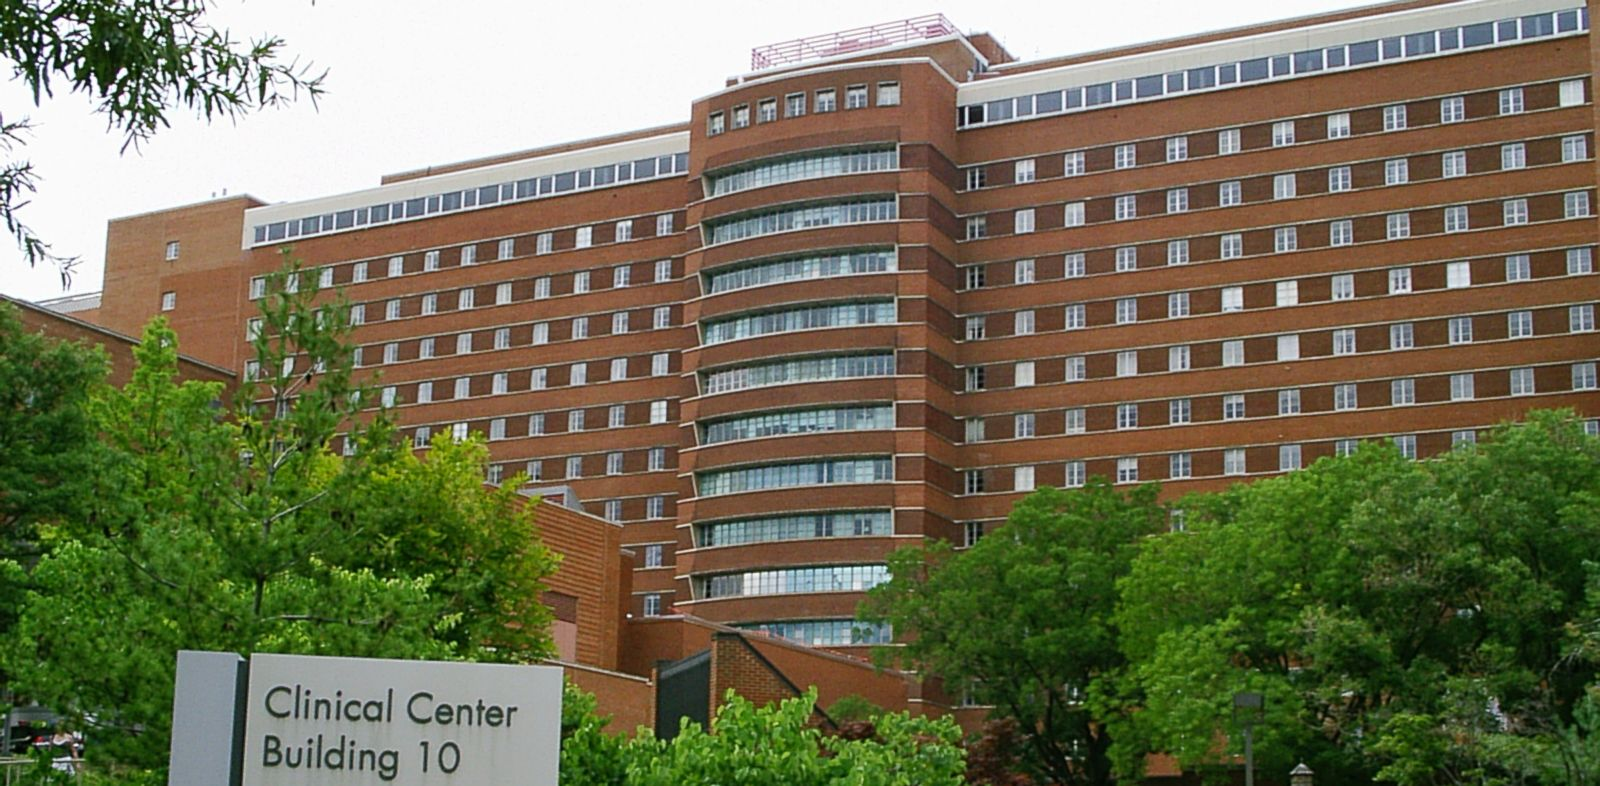 PHOTO: The National Institutes of Health (NIH) campus is located in Bethesda, Md.